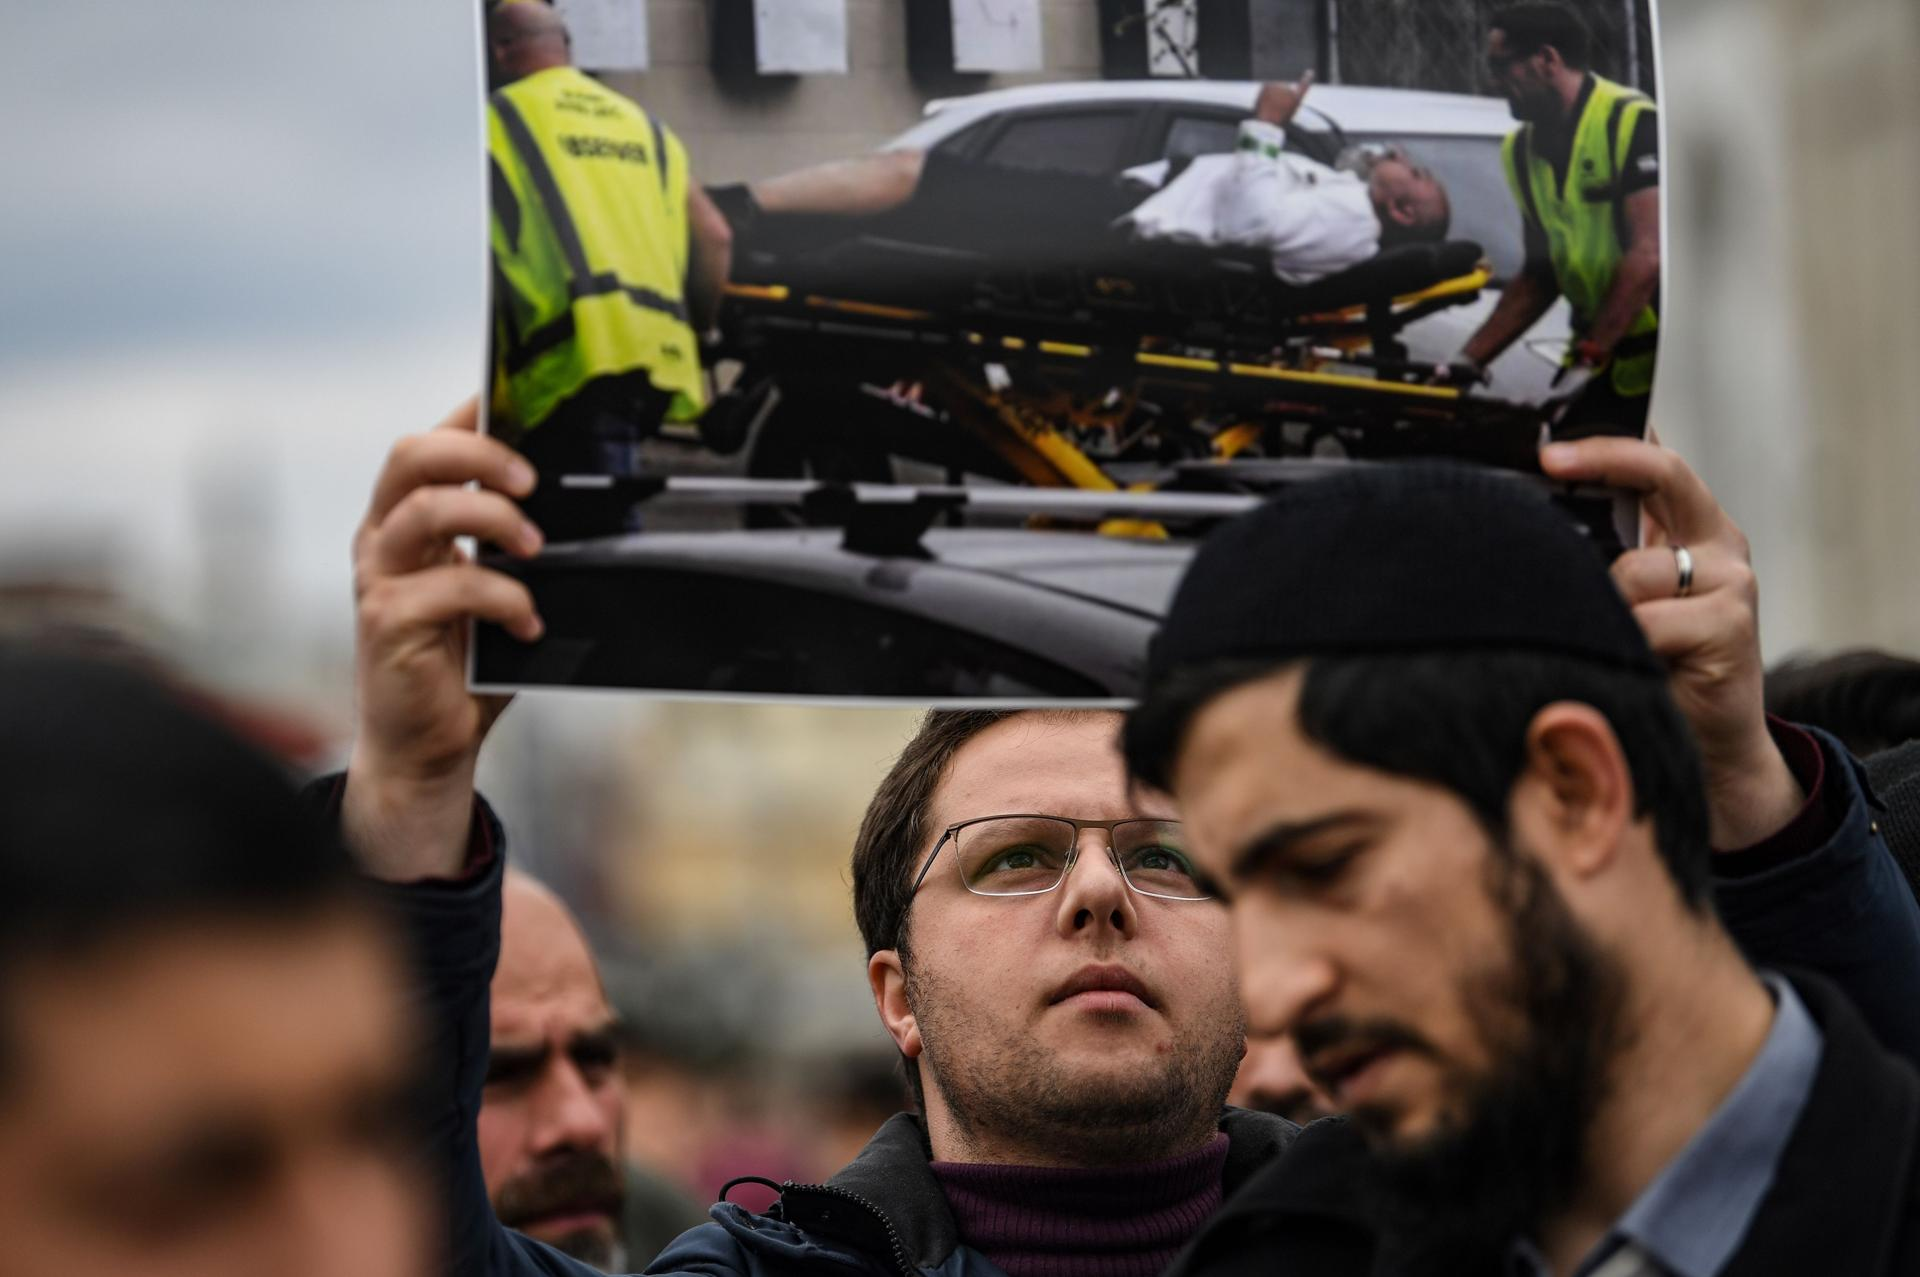 New Zealand Mosque Attack Photo: Photos: New Zealand Rocked By Mass Shooting